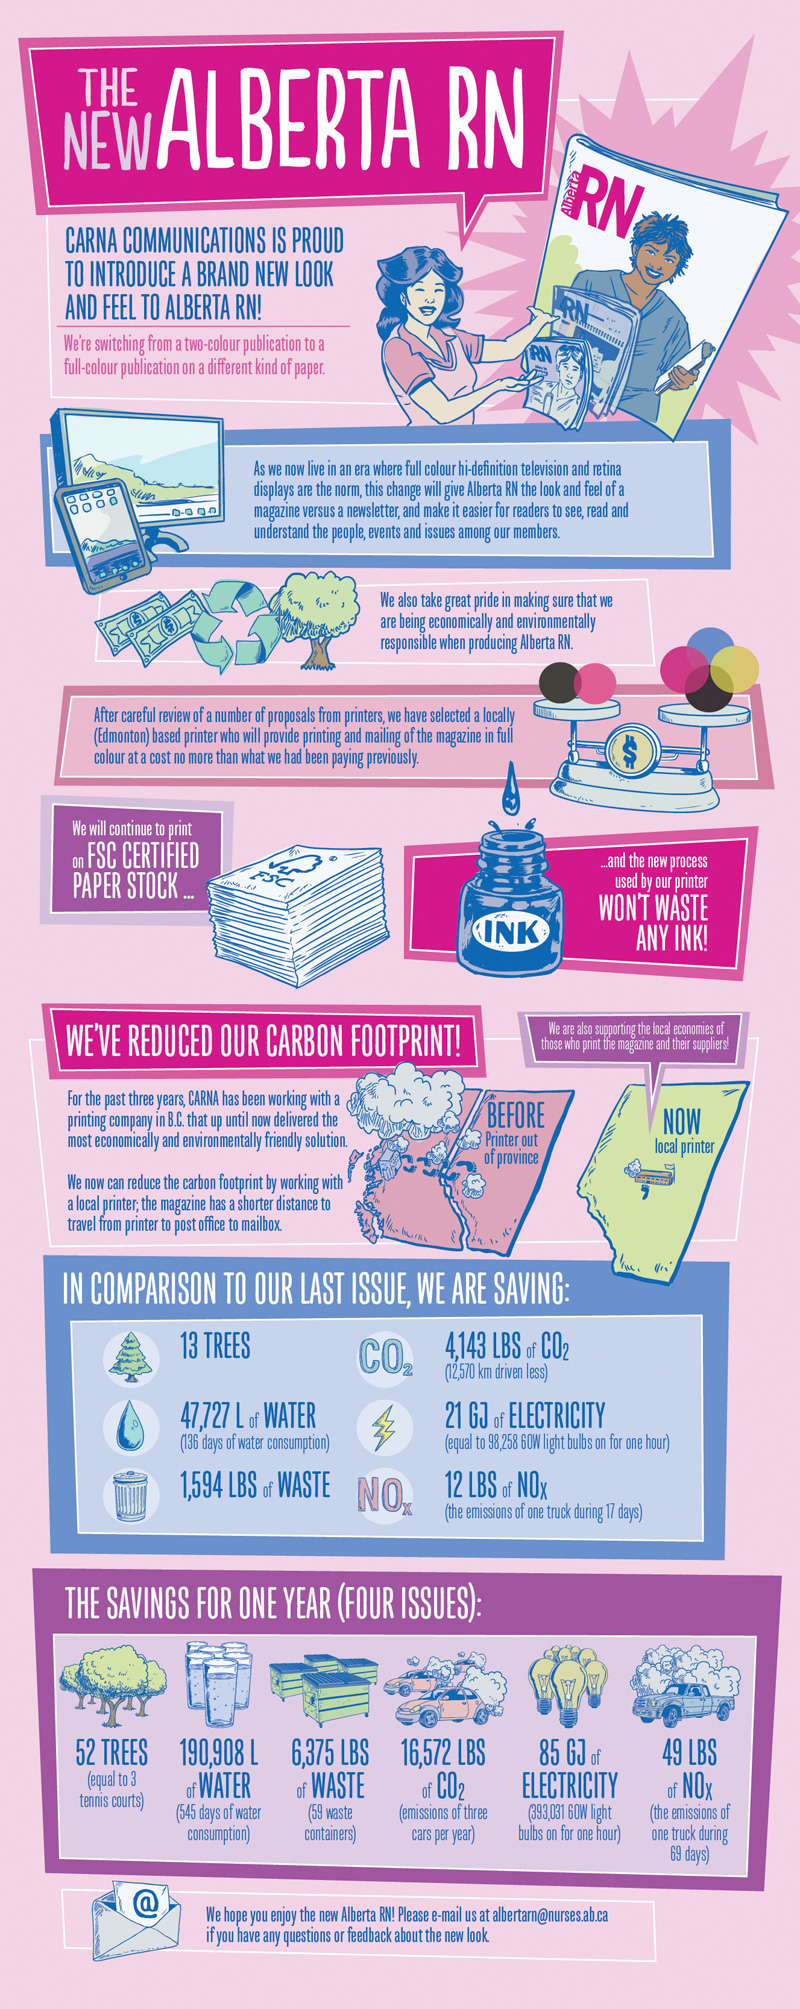 The-new-Alberta-RN-InfographicTall_20130918